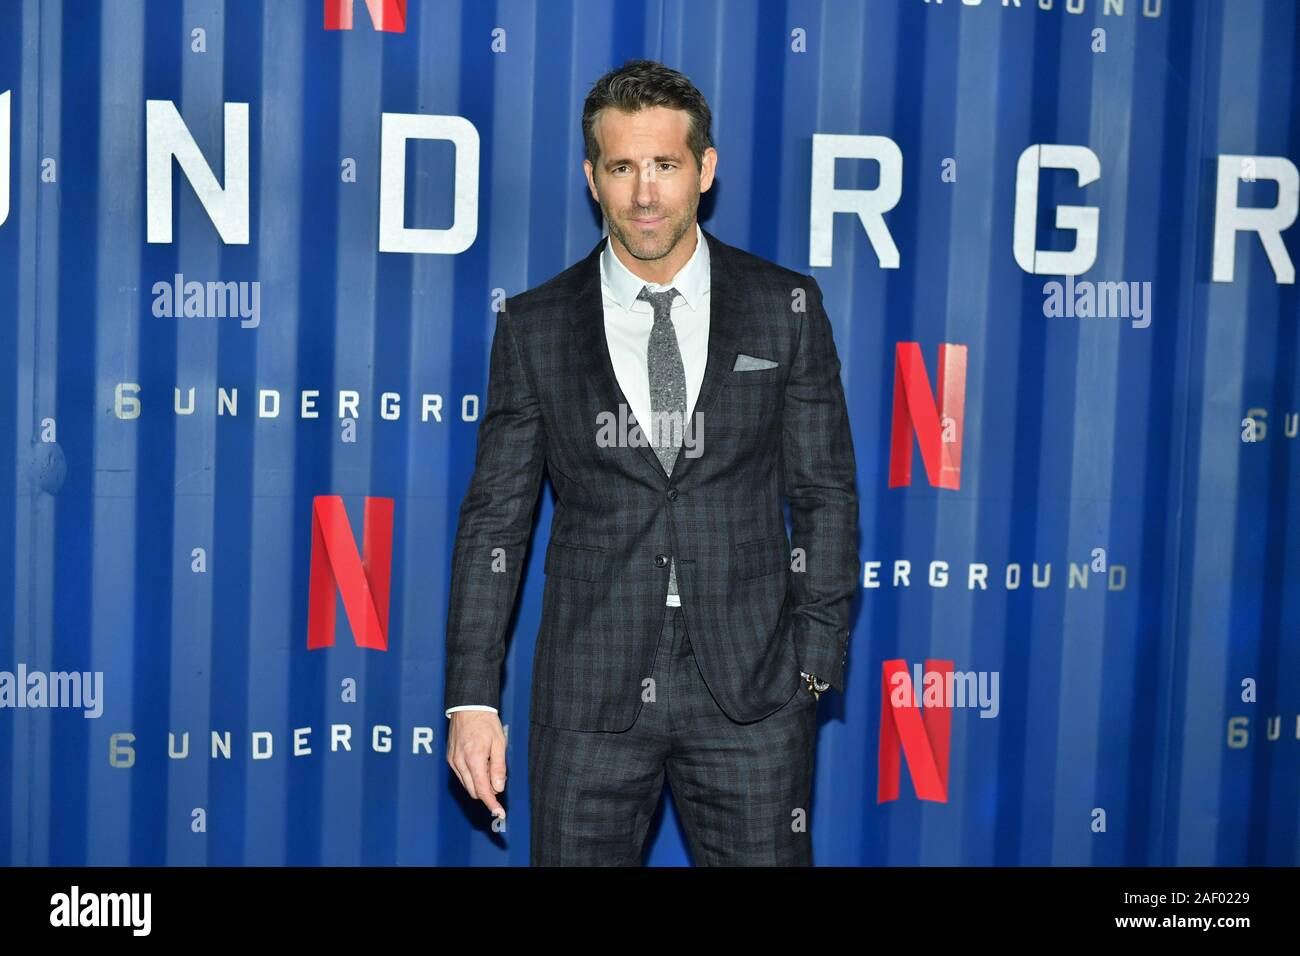 """Ryan Reynolds attends Netflix's """"6 Underground"""" New York Premiere at The Shed on December 10, 2019 in New York City. Stock Photo"""